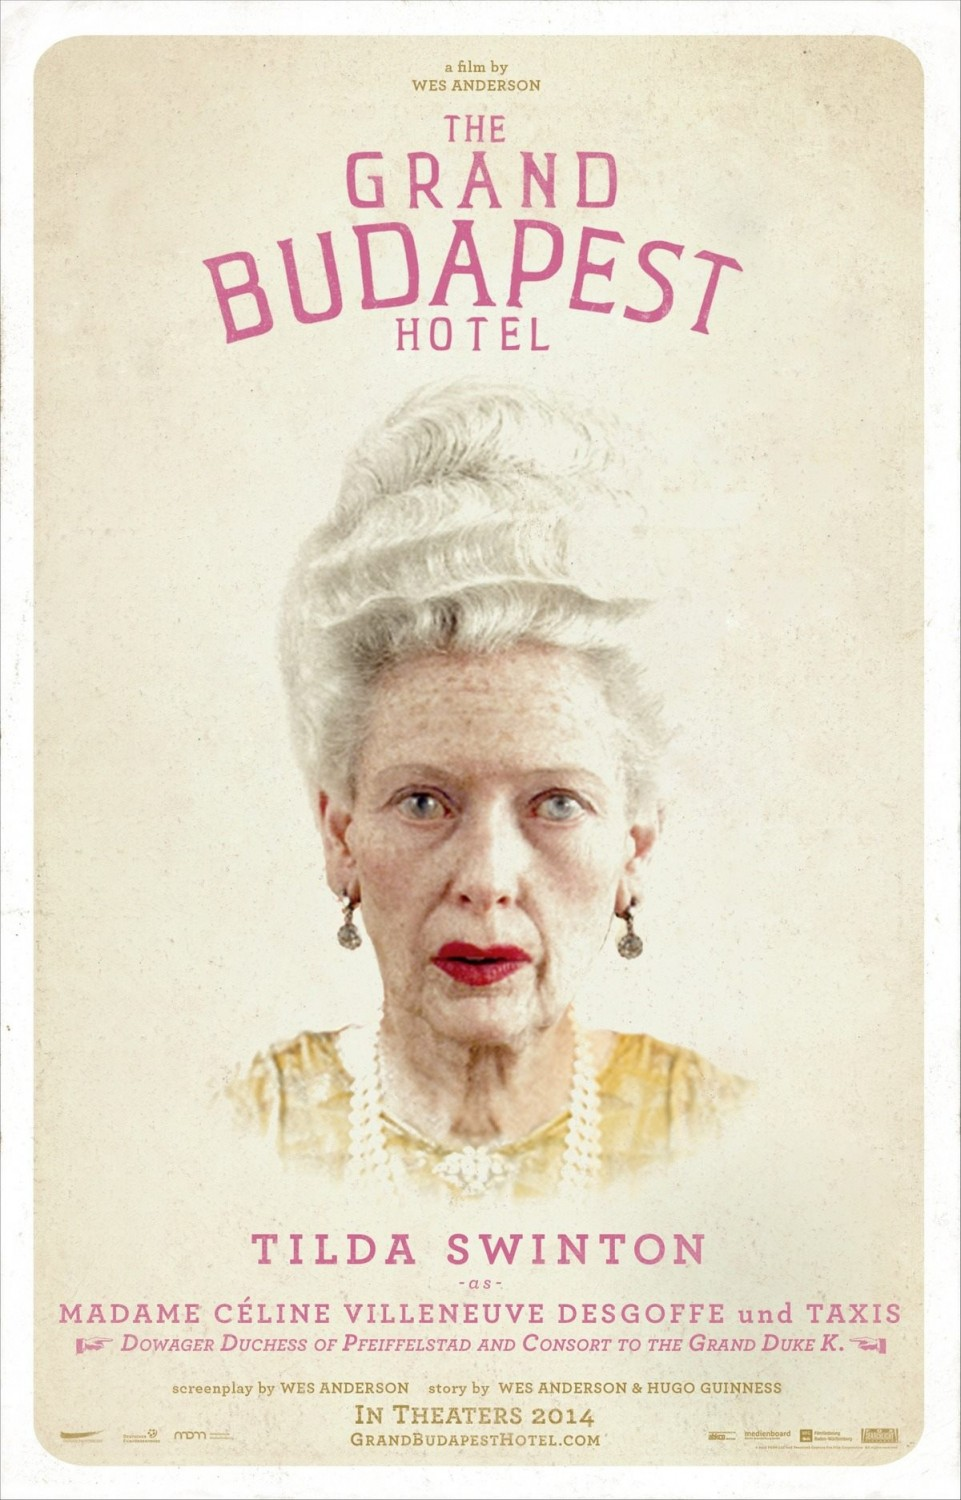 The Grand Budapest Hotel Release Date